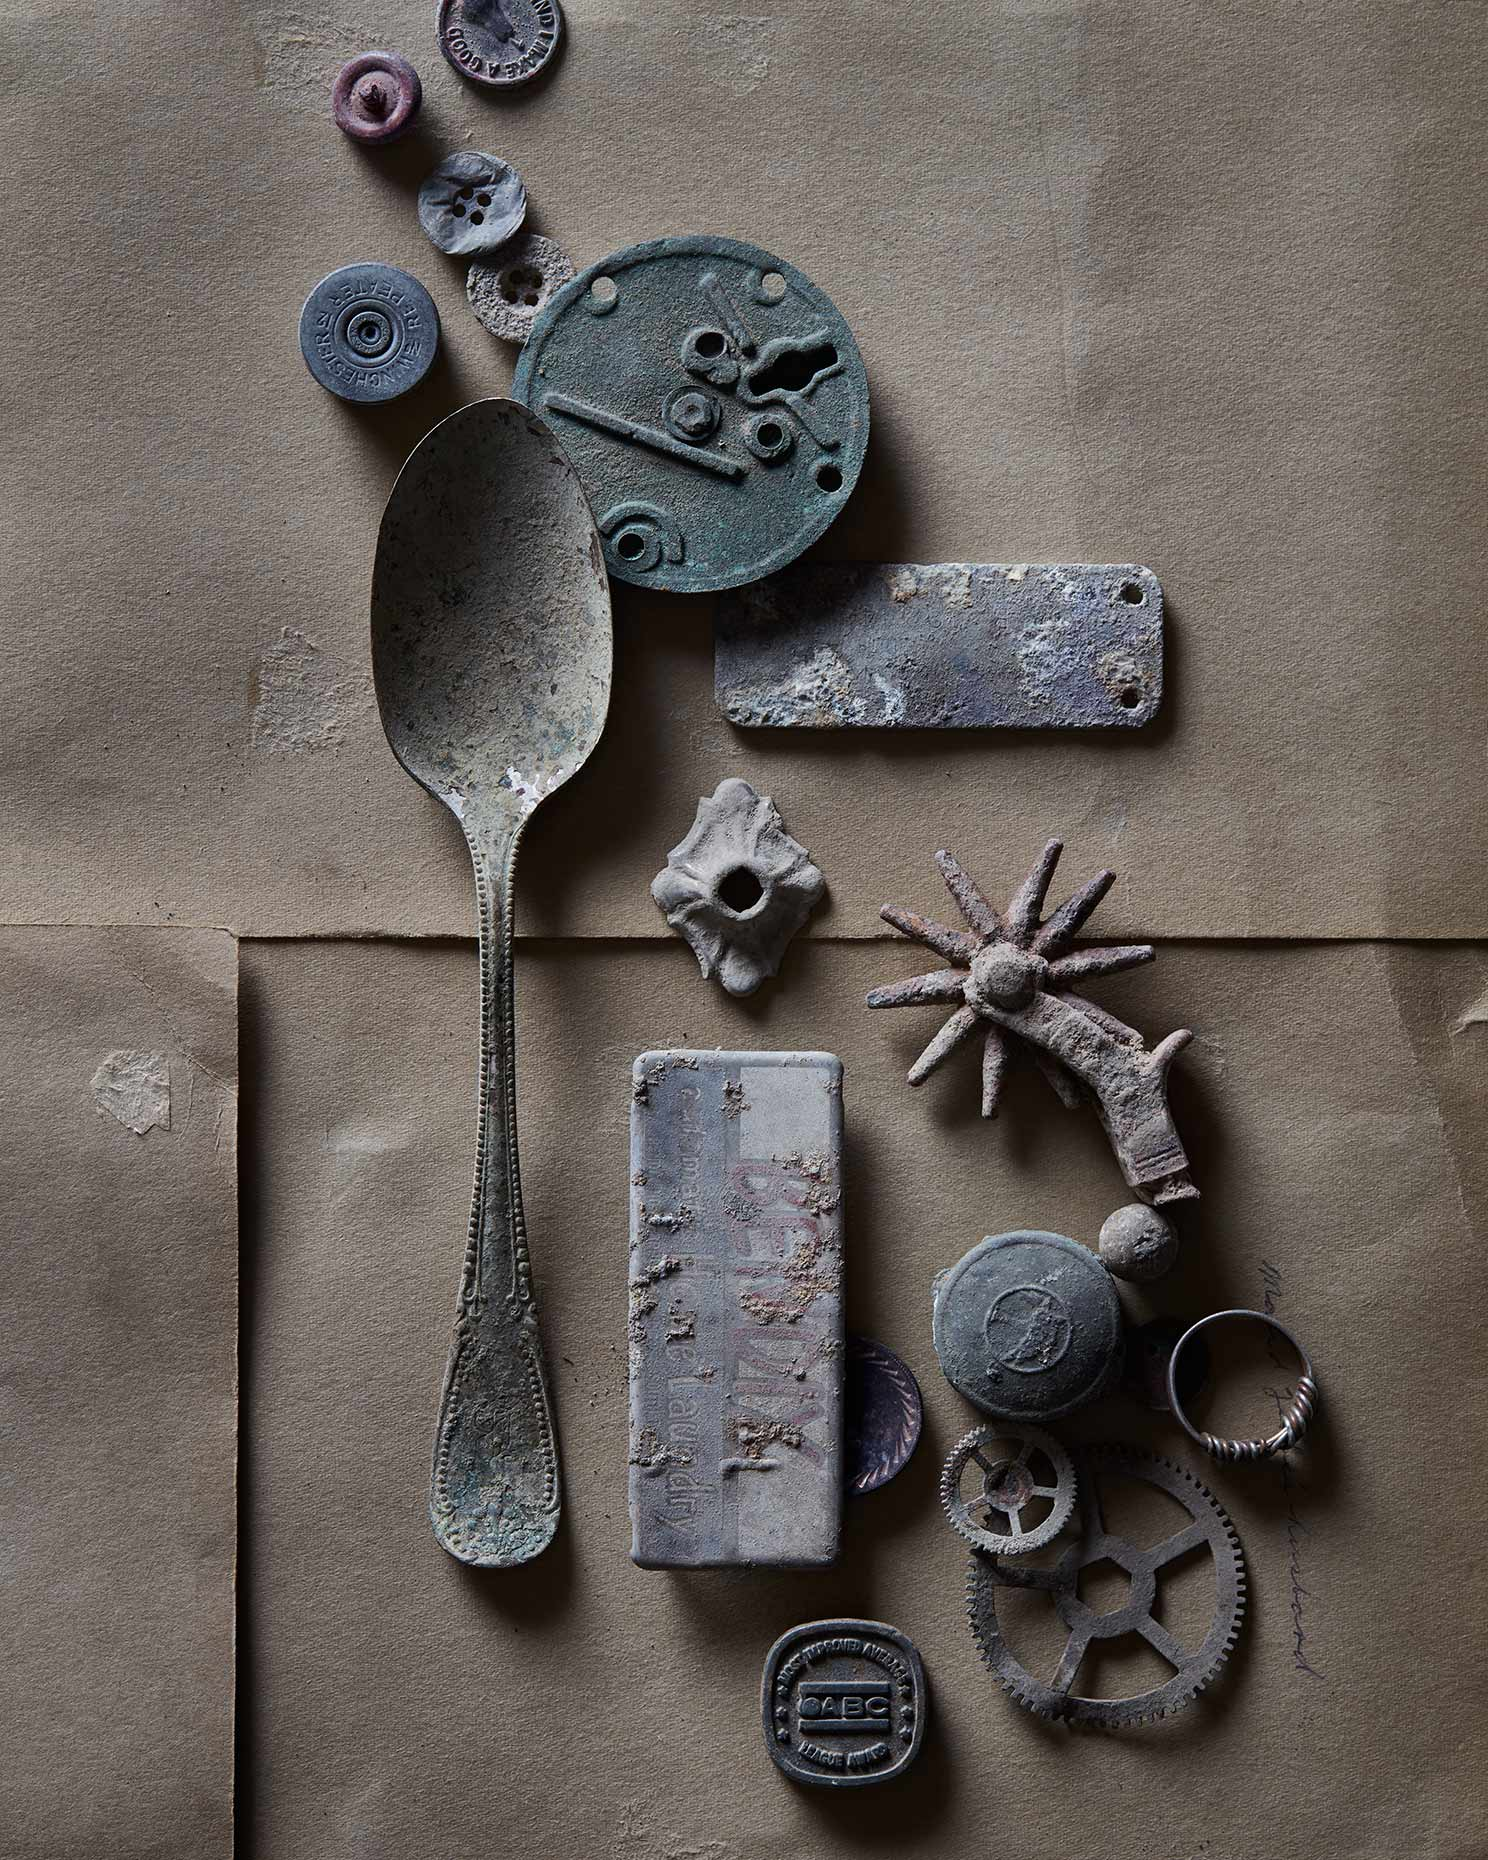 Found objects from metal detector collection